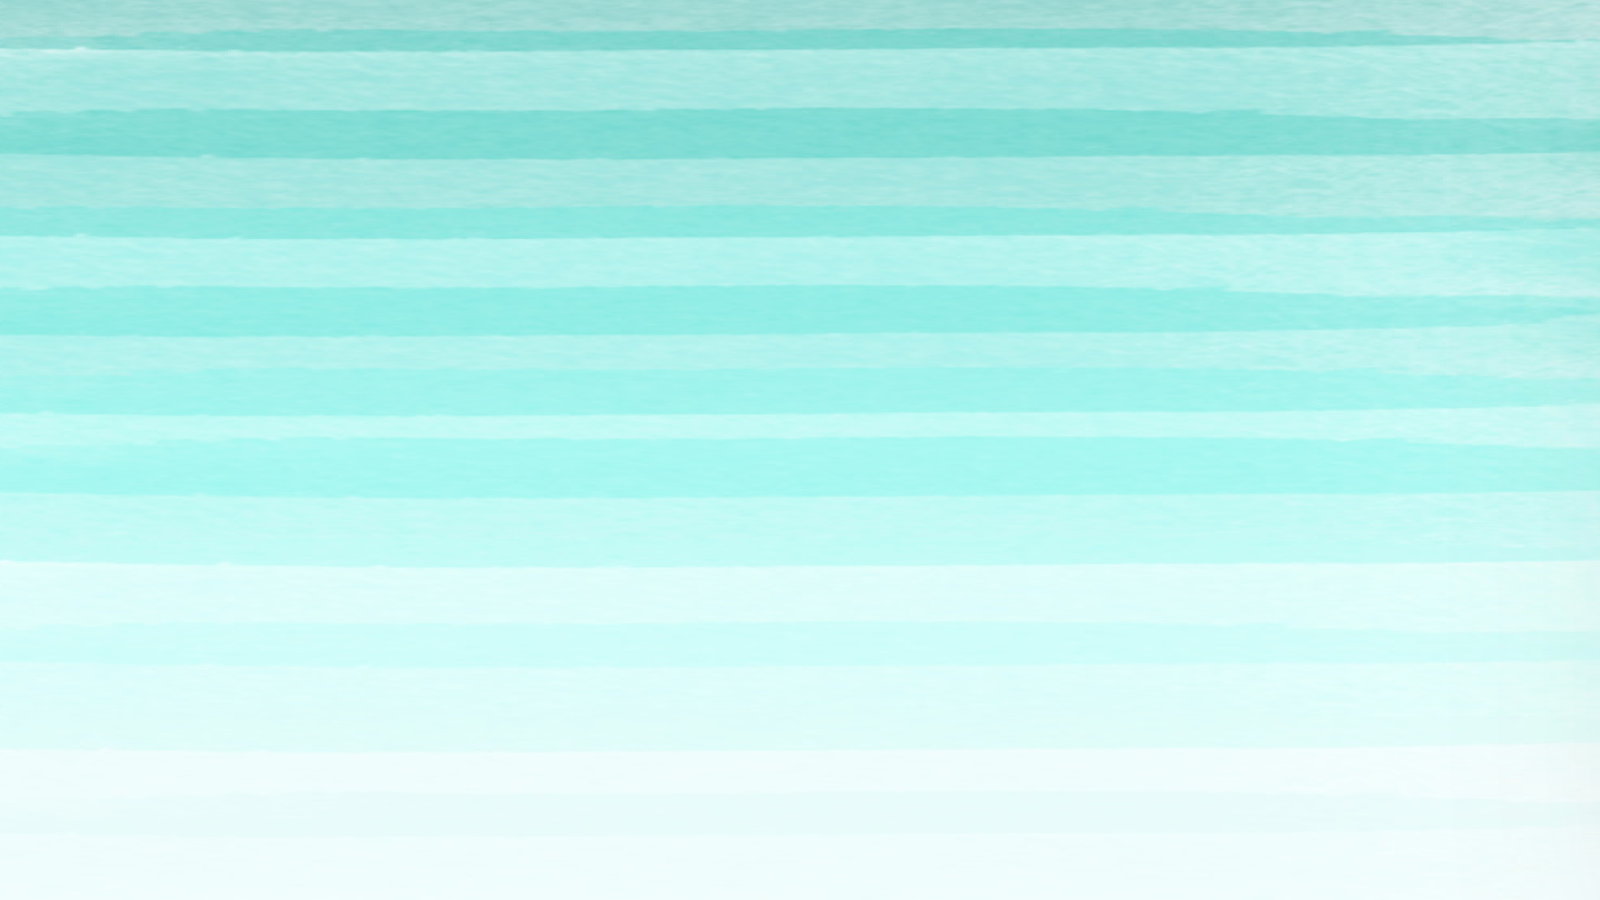 Ombre Paint Background Tumblr Cute Ombre Blue Backgrounds 1600x900 Download Hd Wallpaper Wallpapertip